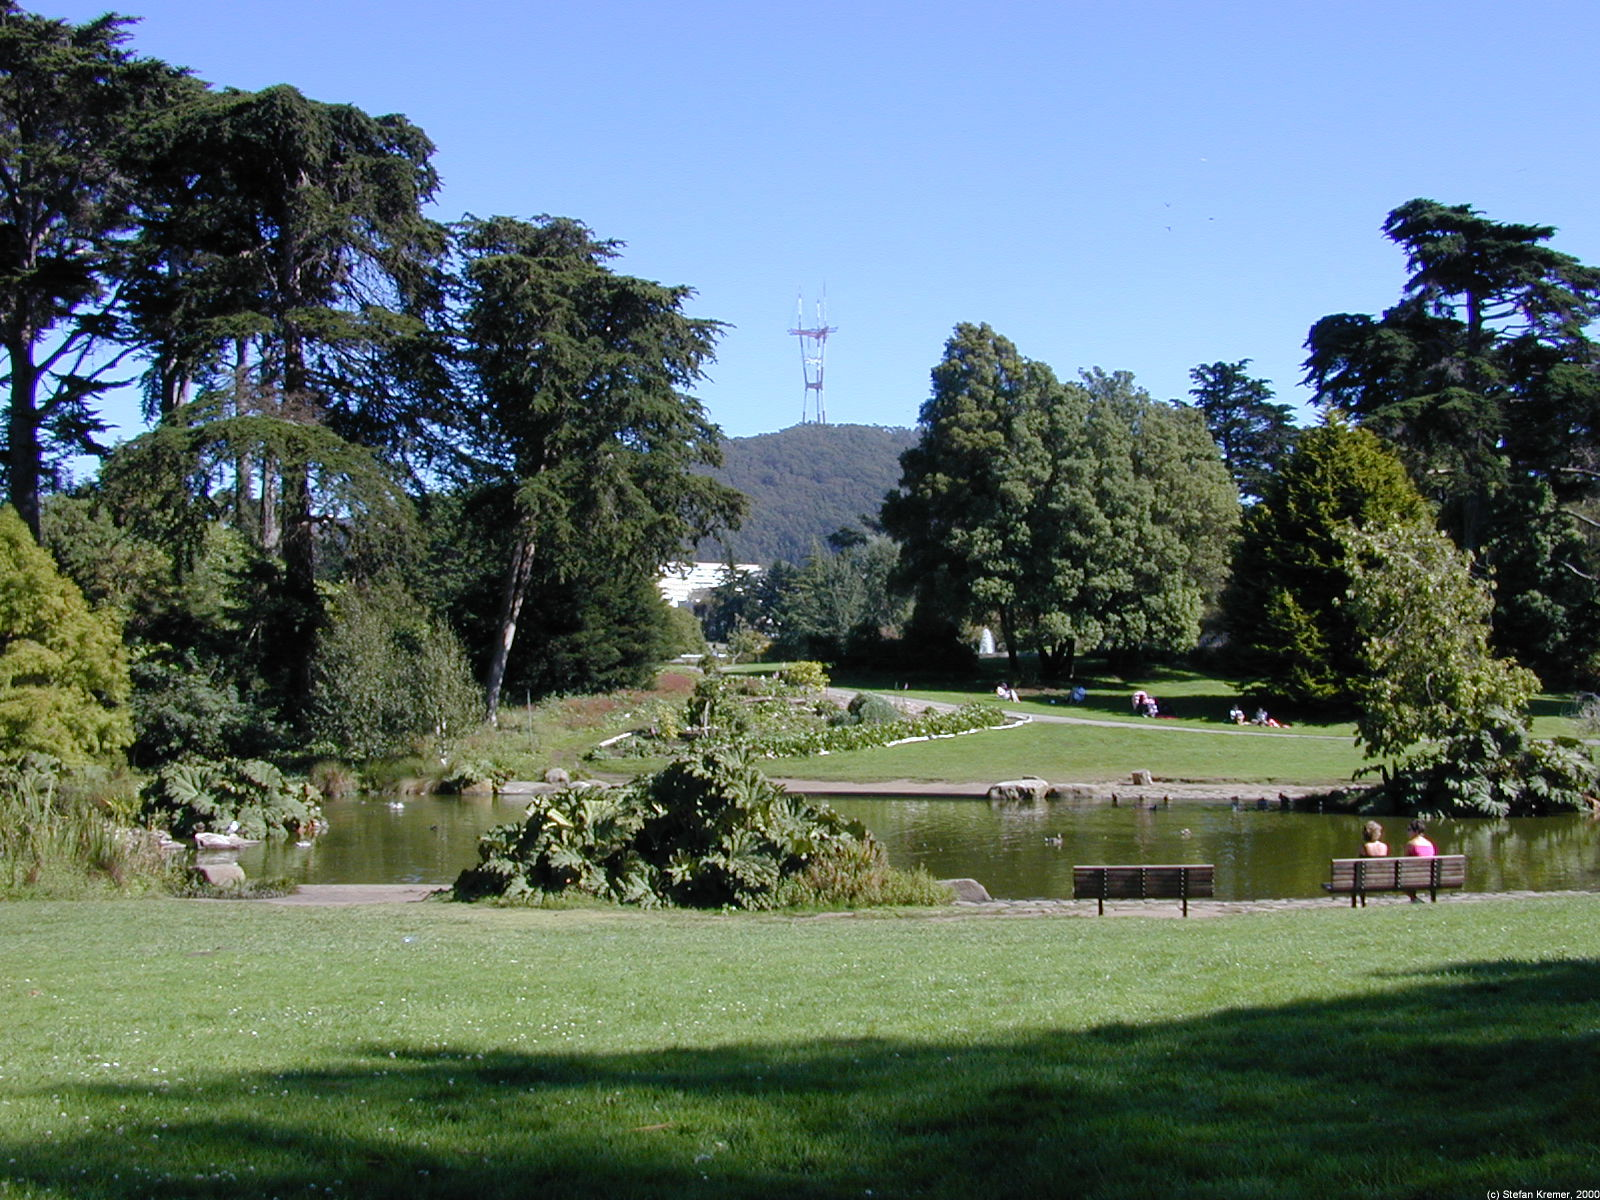 Botanischer Garten, Golden Gate Park, San Francisco, Kalifornien